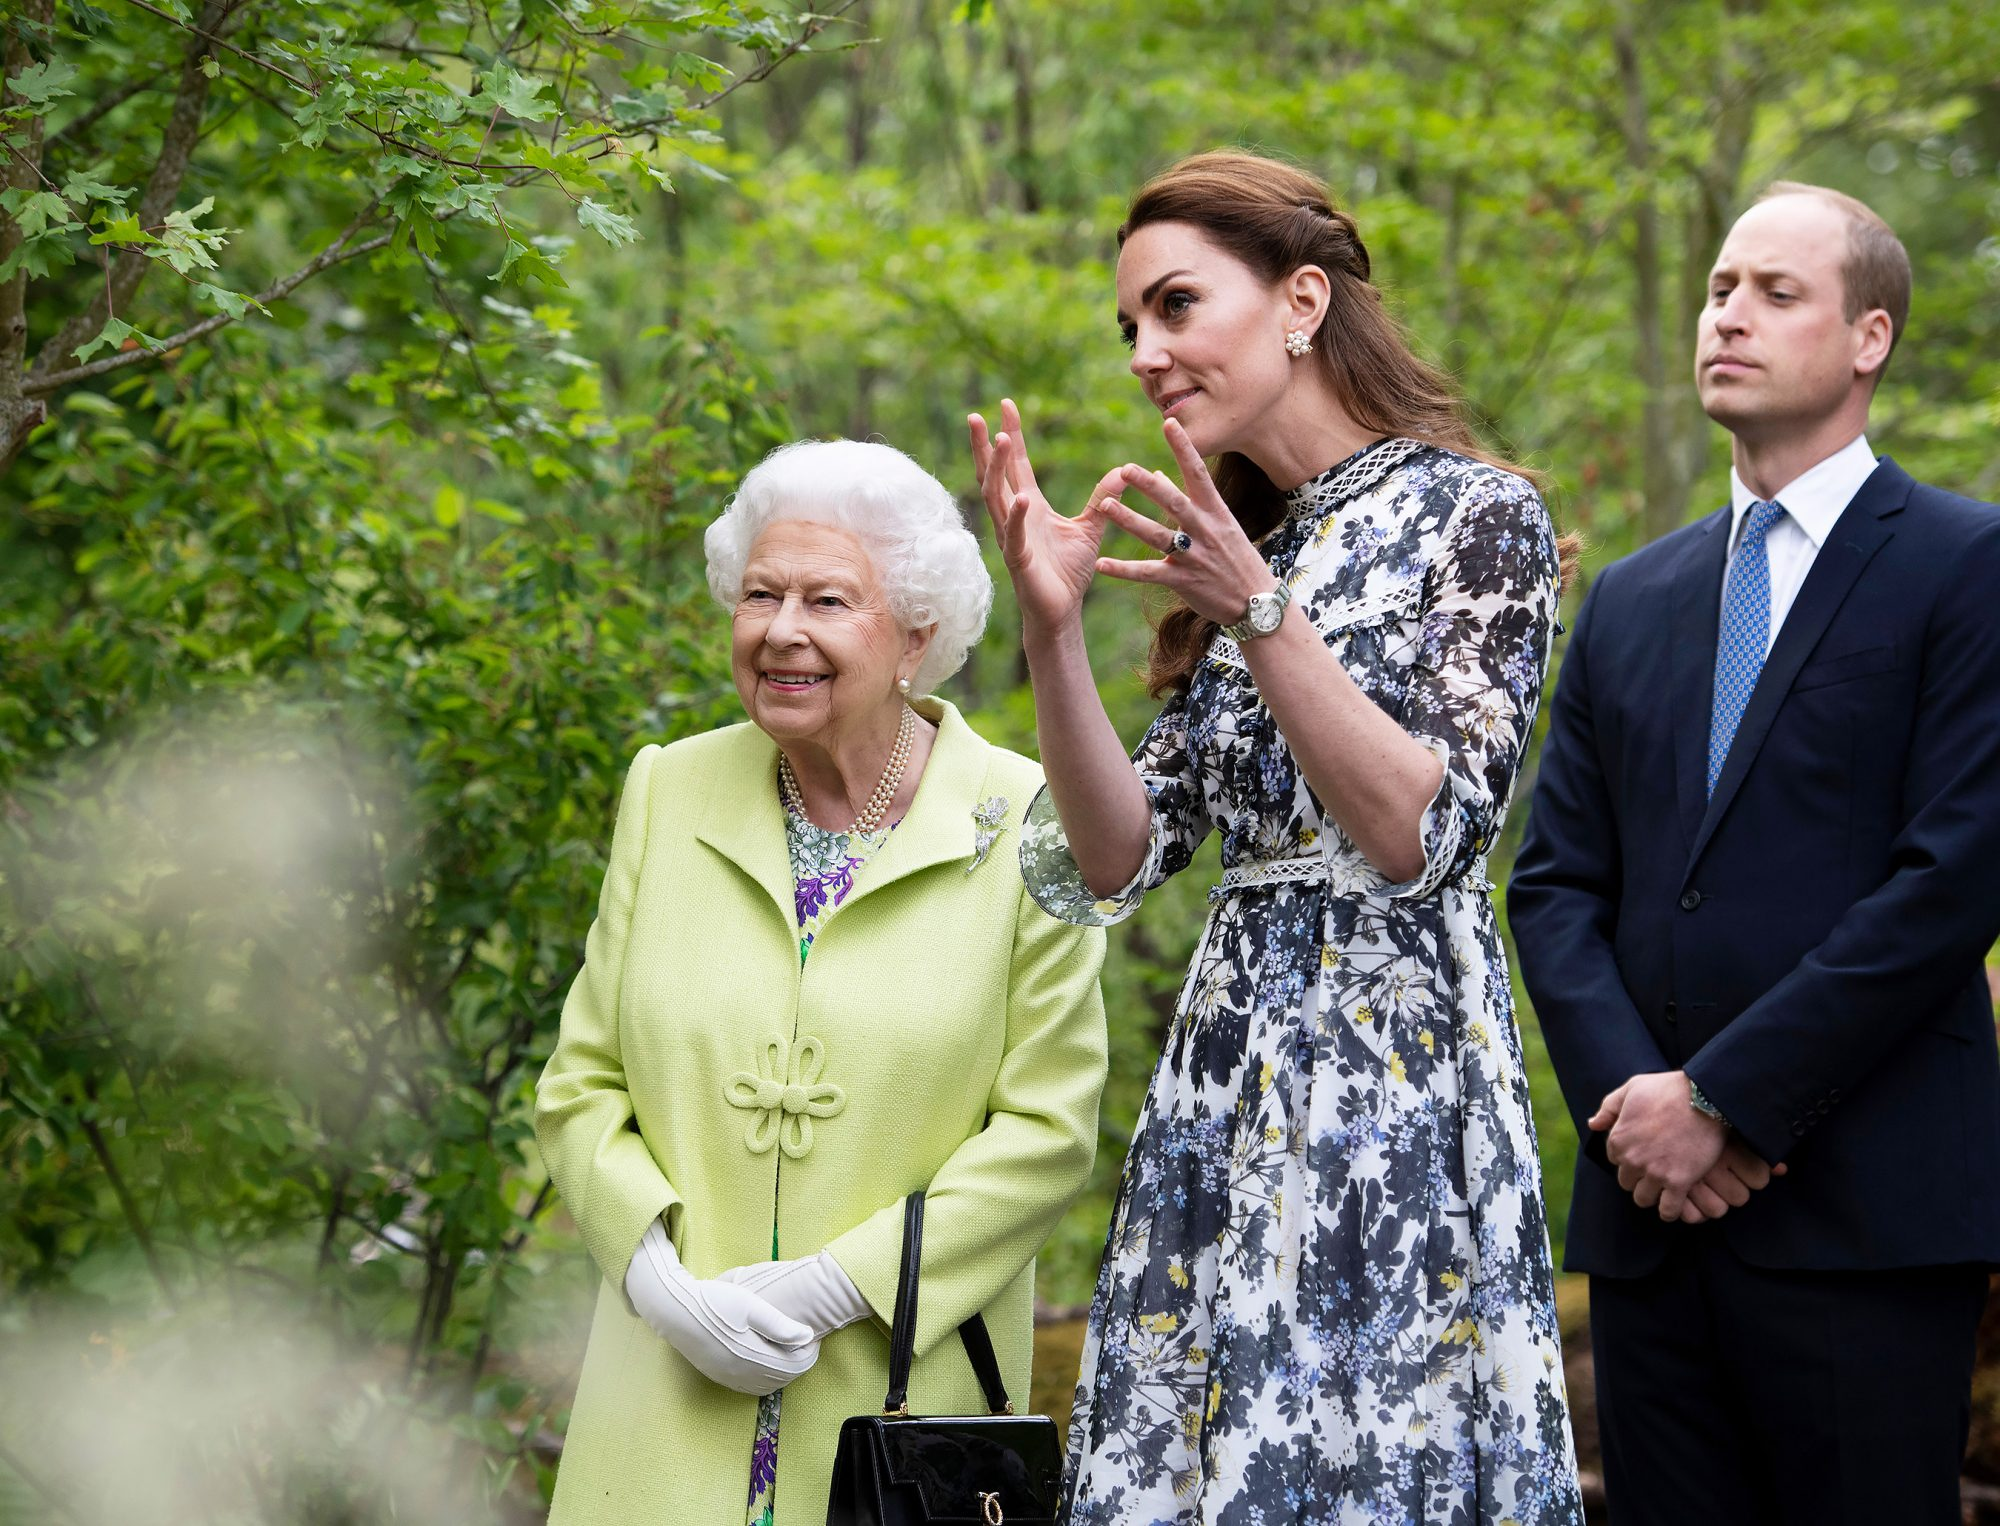 Queen Elizabeth II is shown around 'Back to Nature' by Prince William and Catherine Duchess of Cambridge